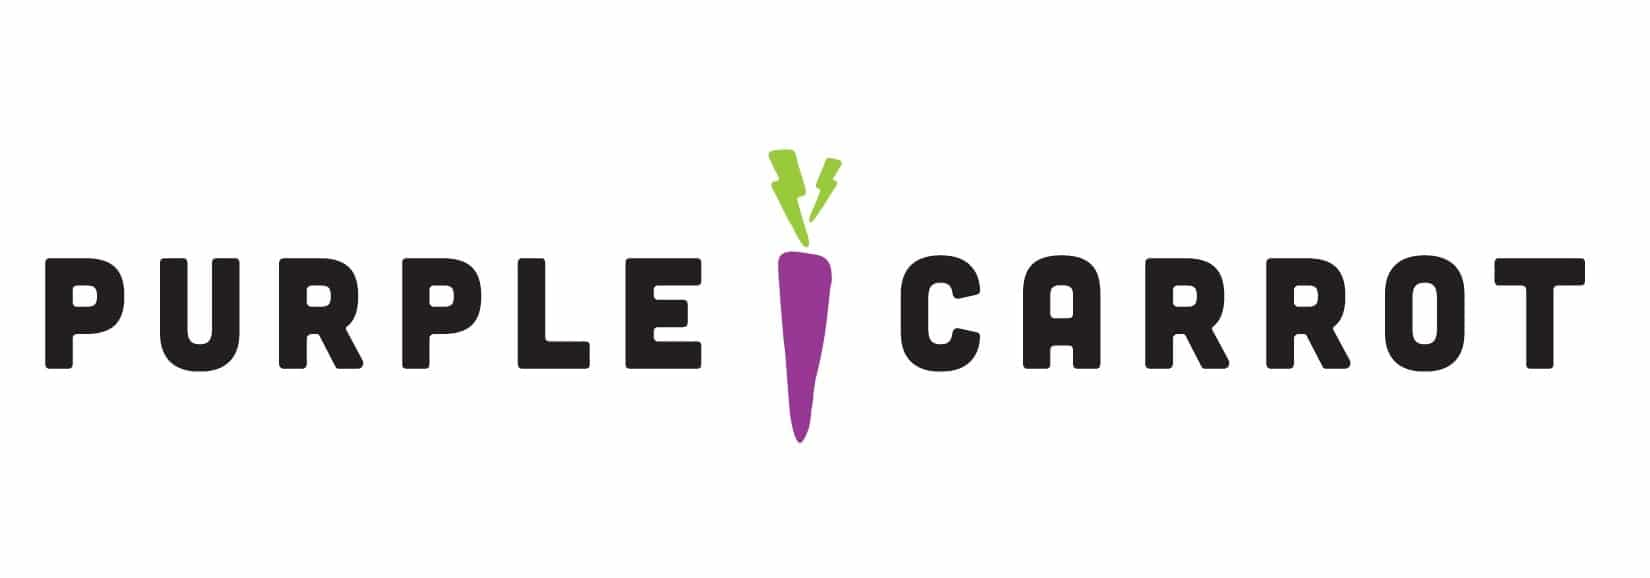 Purple Carrot Secures $4 Million Investment